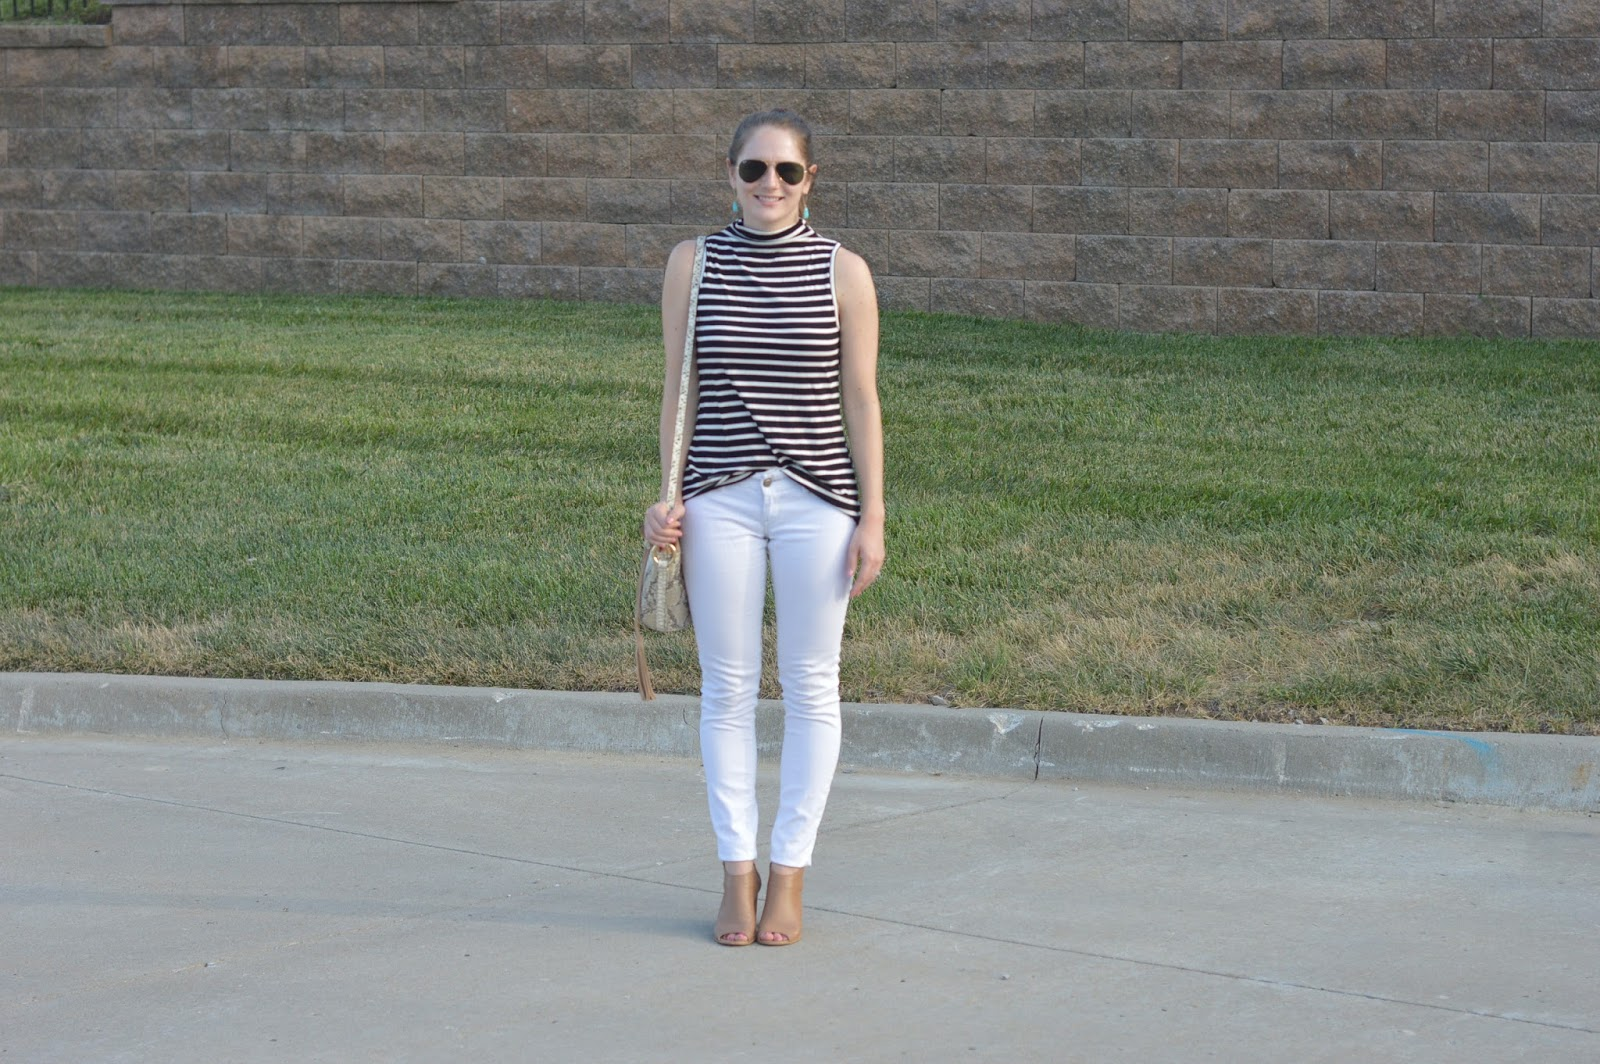 new ways to style your white jeans | white jeans with a striped top | summer outfit ideas | cute outfits to wear for fall | peep toed booties | what to pair with a striped top |